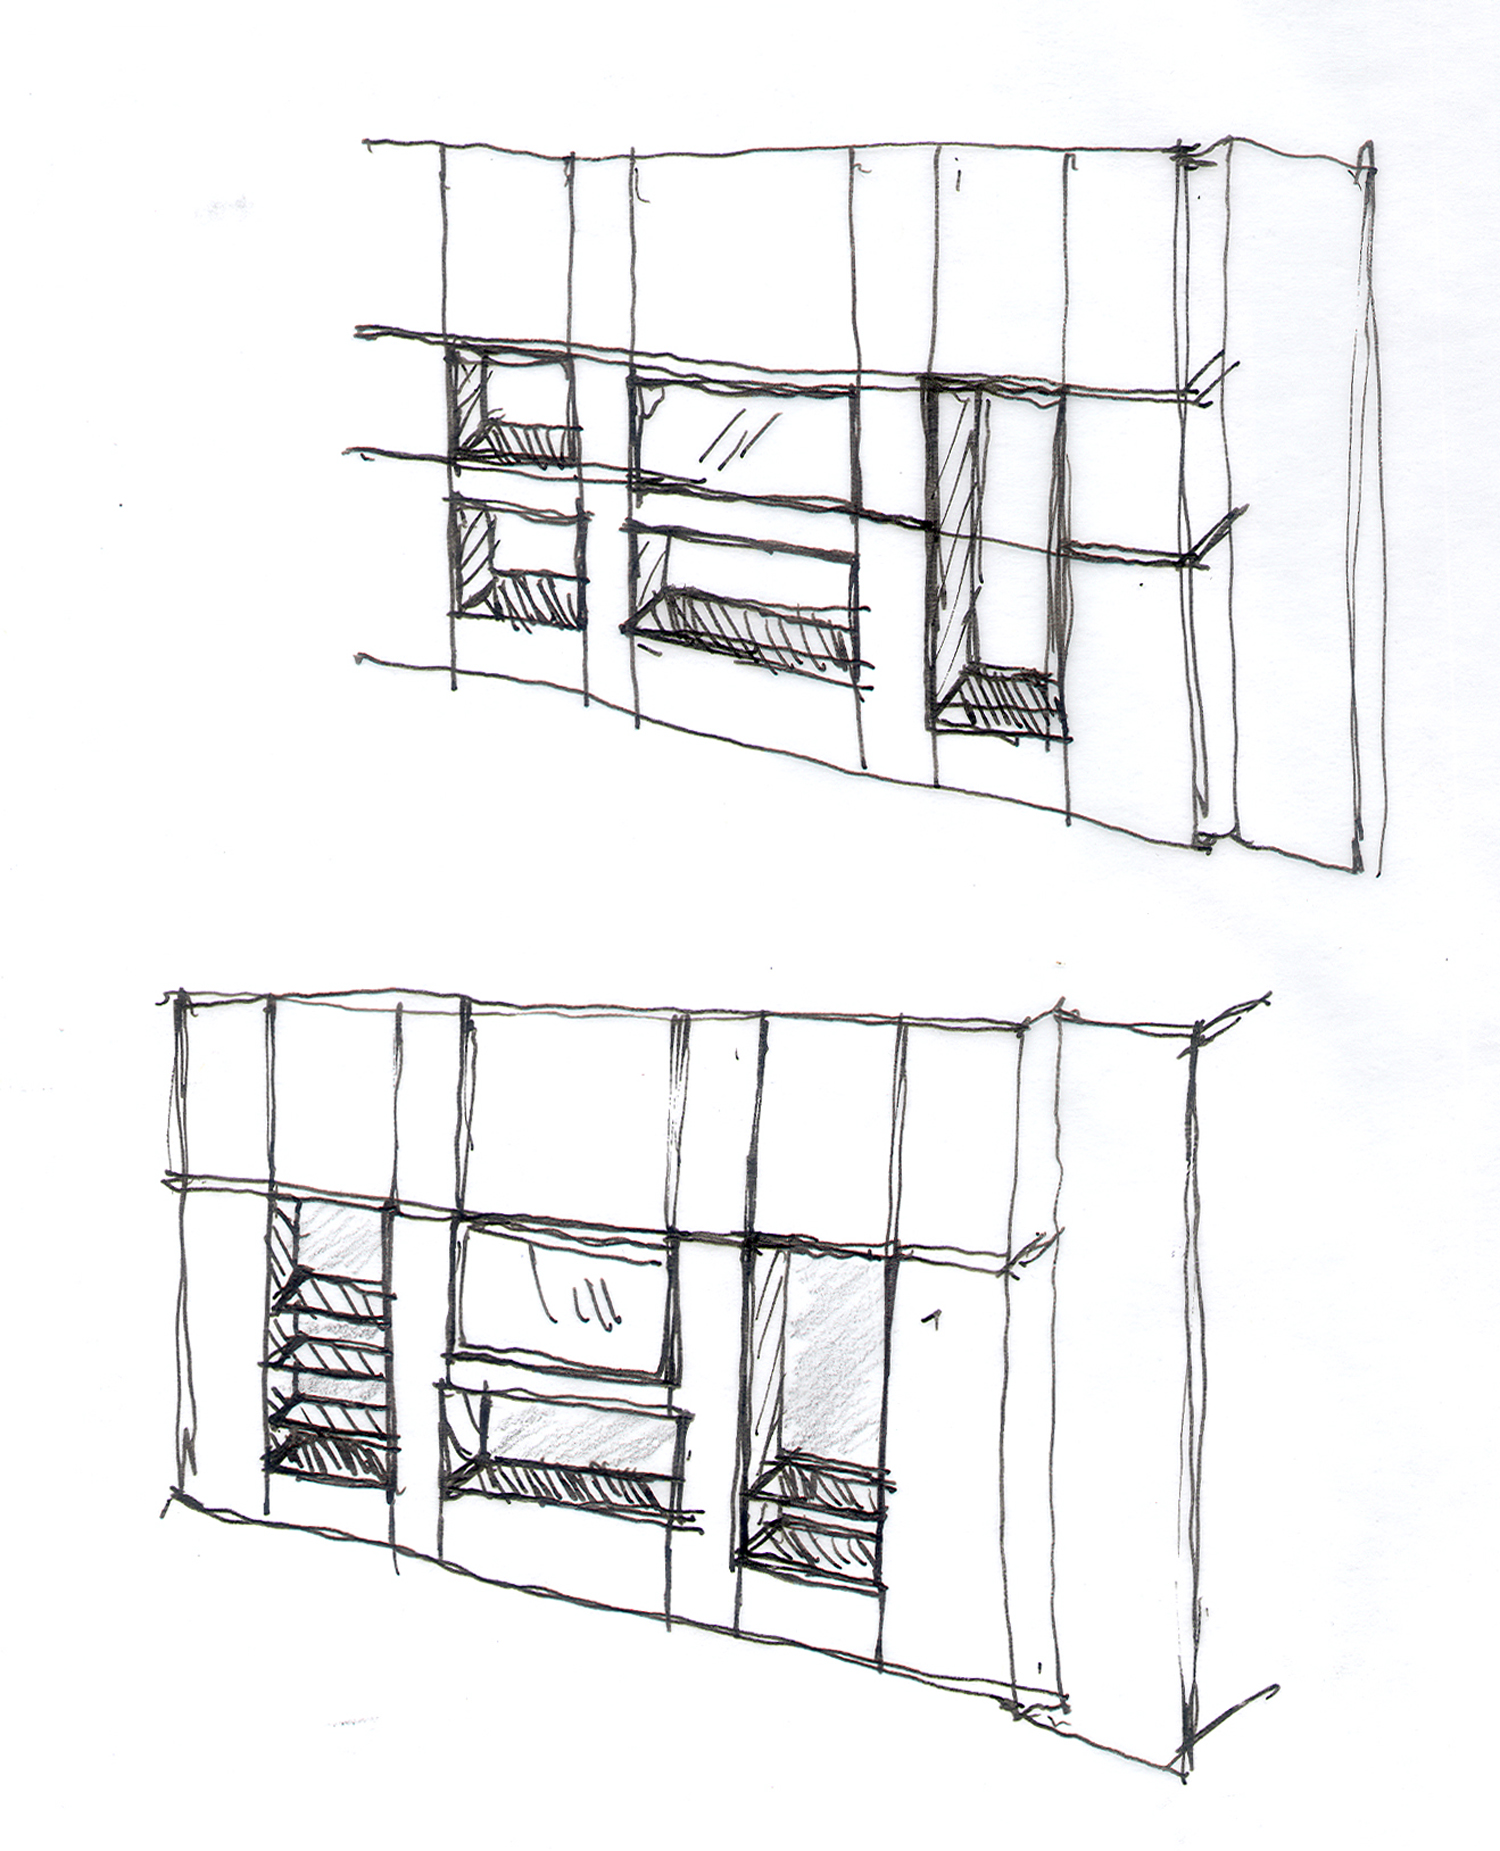 display wall sketch.jpg